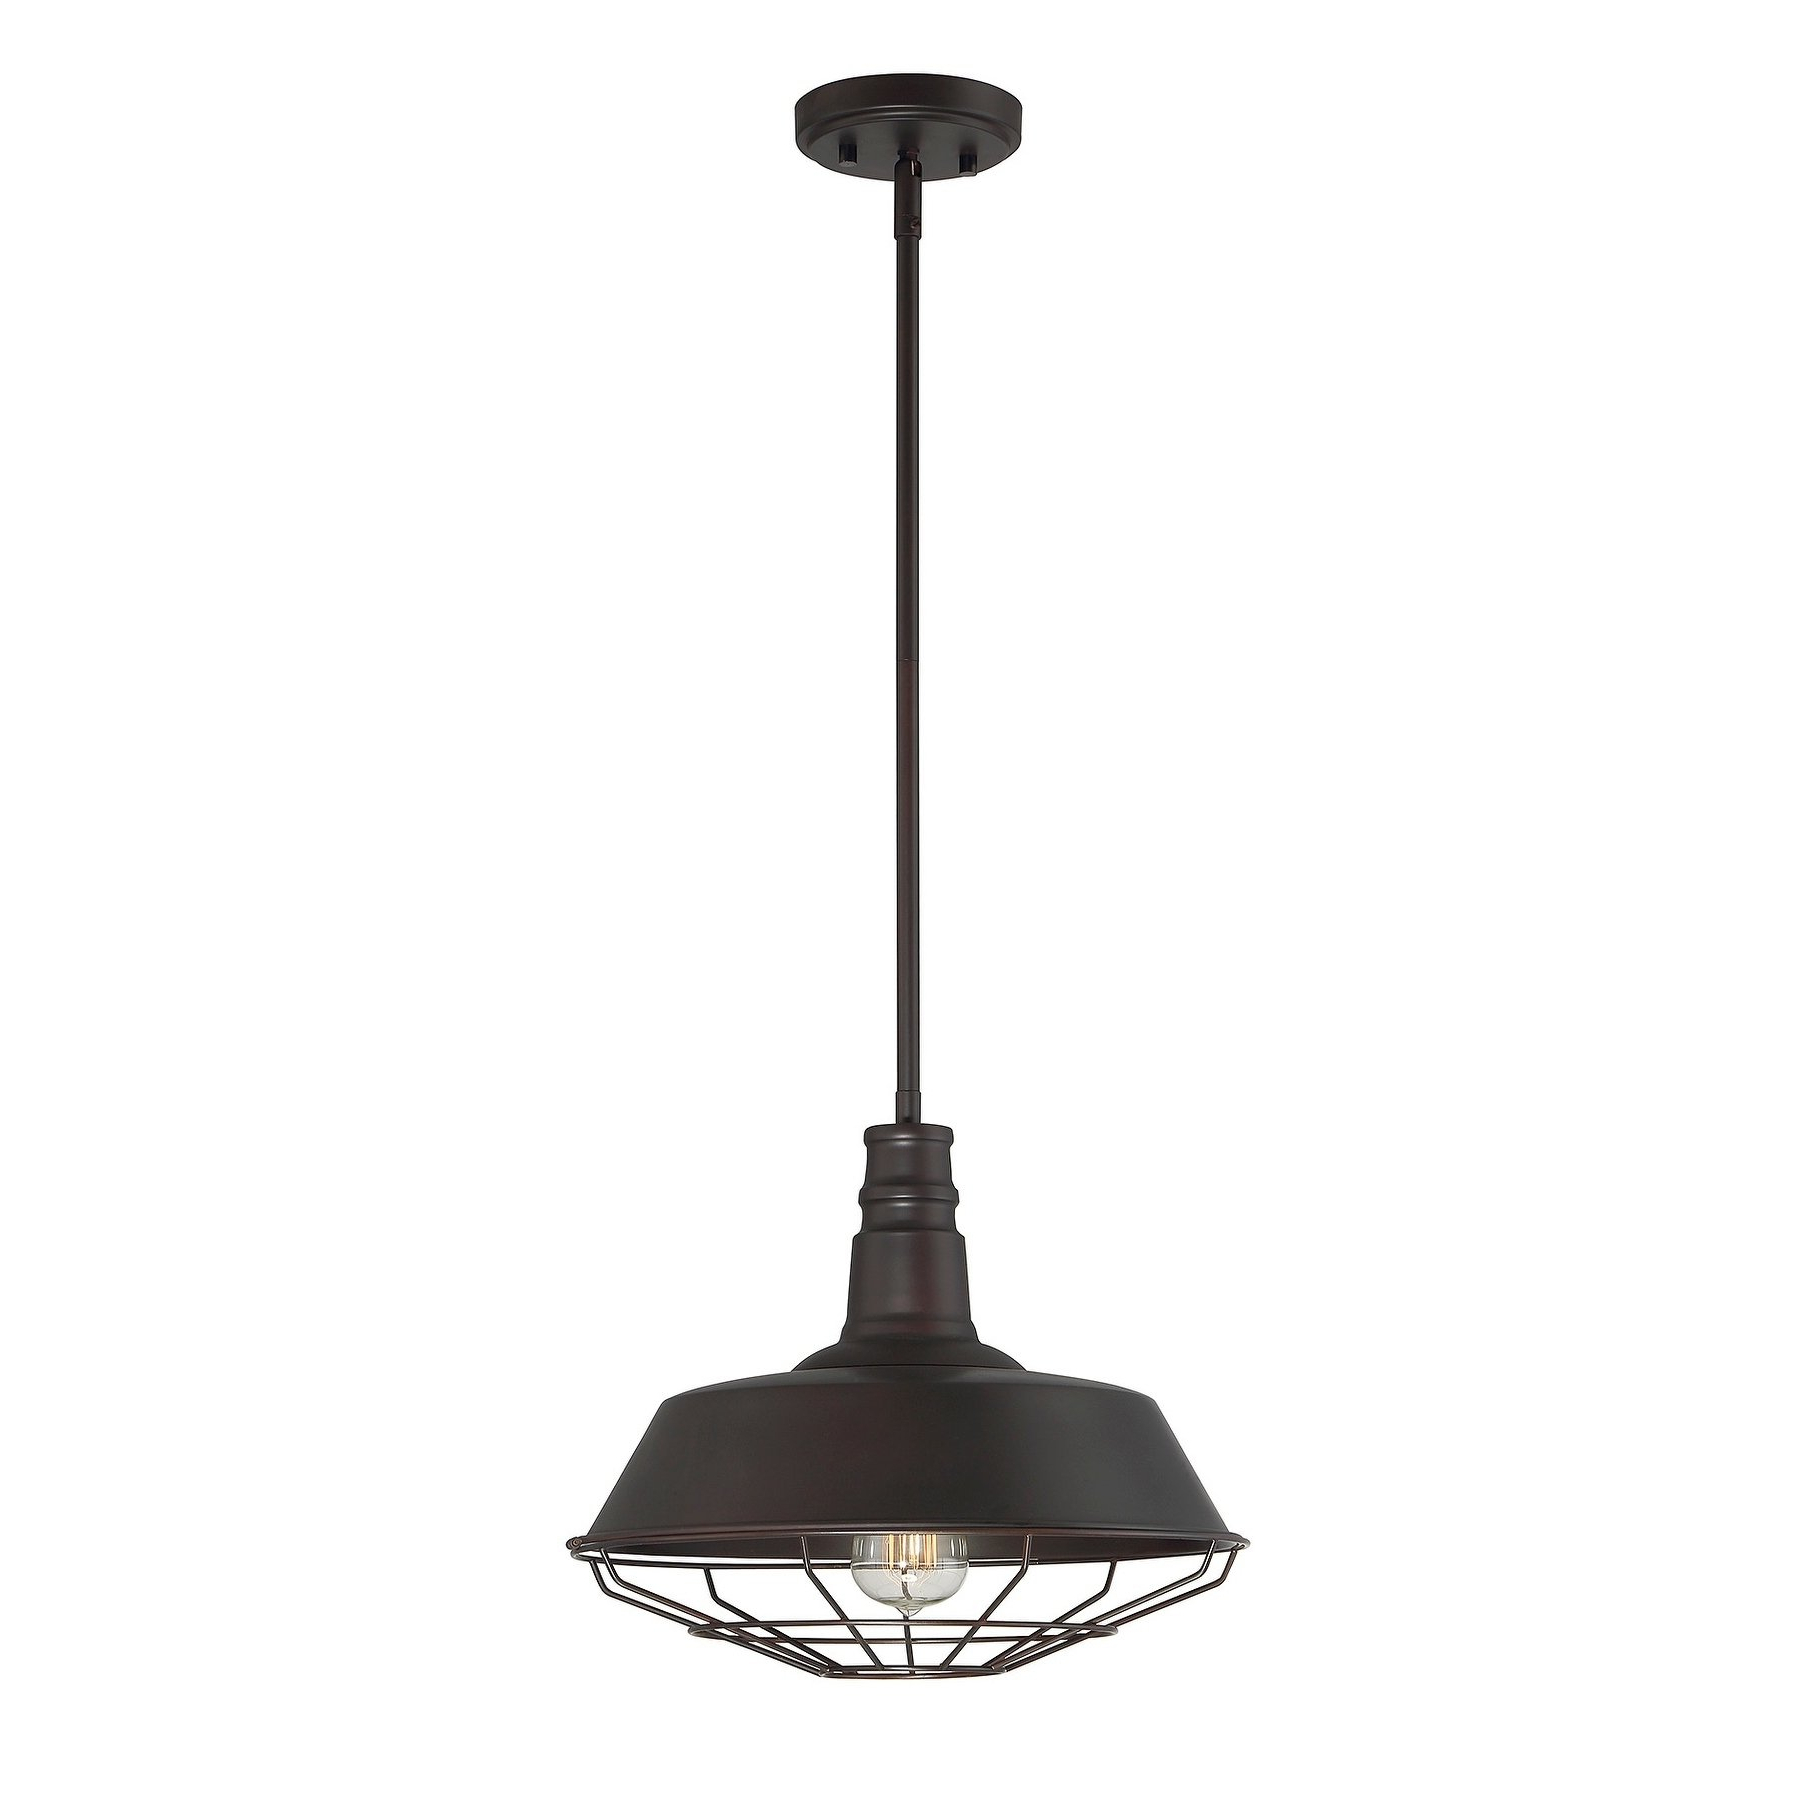 Carbon Loft Melville 1 Light Pendant With Oil Rubbed Bronze Throughout 2019 Freeda 1 Light Single Dome Pendants (View 4 of 20)